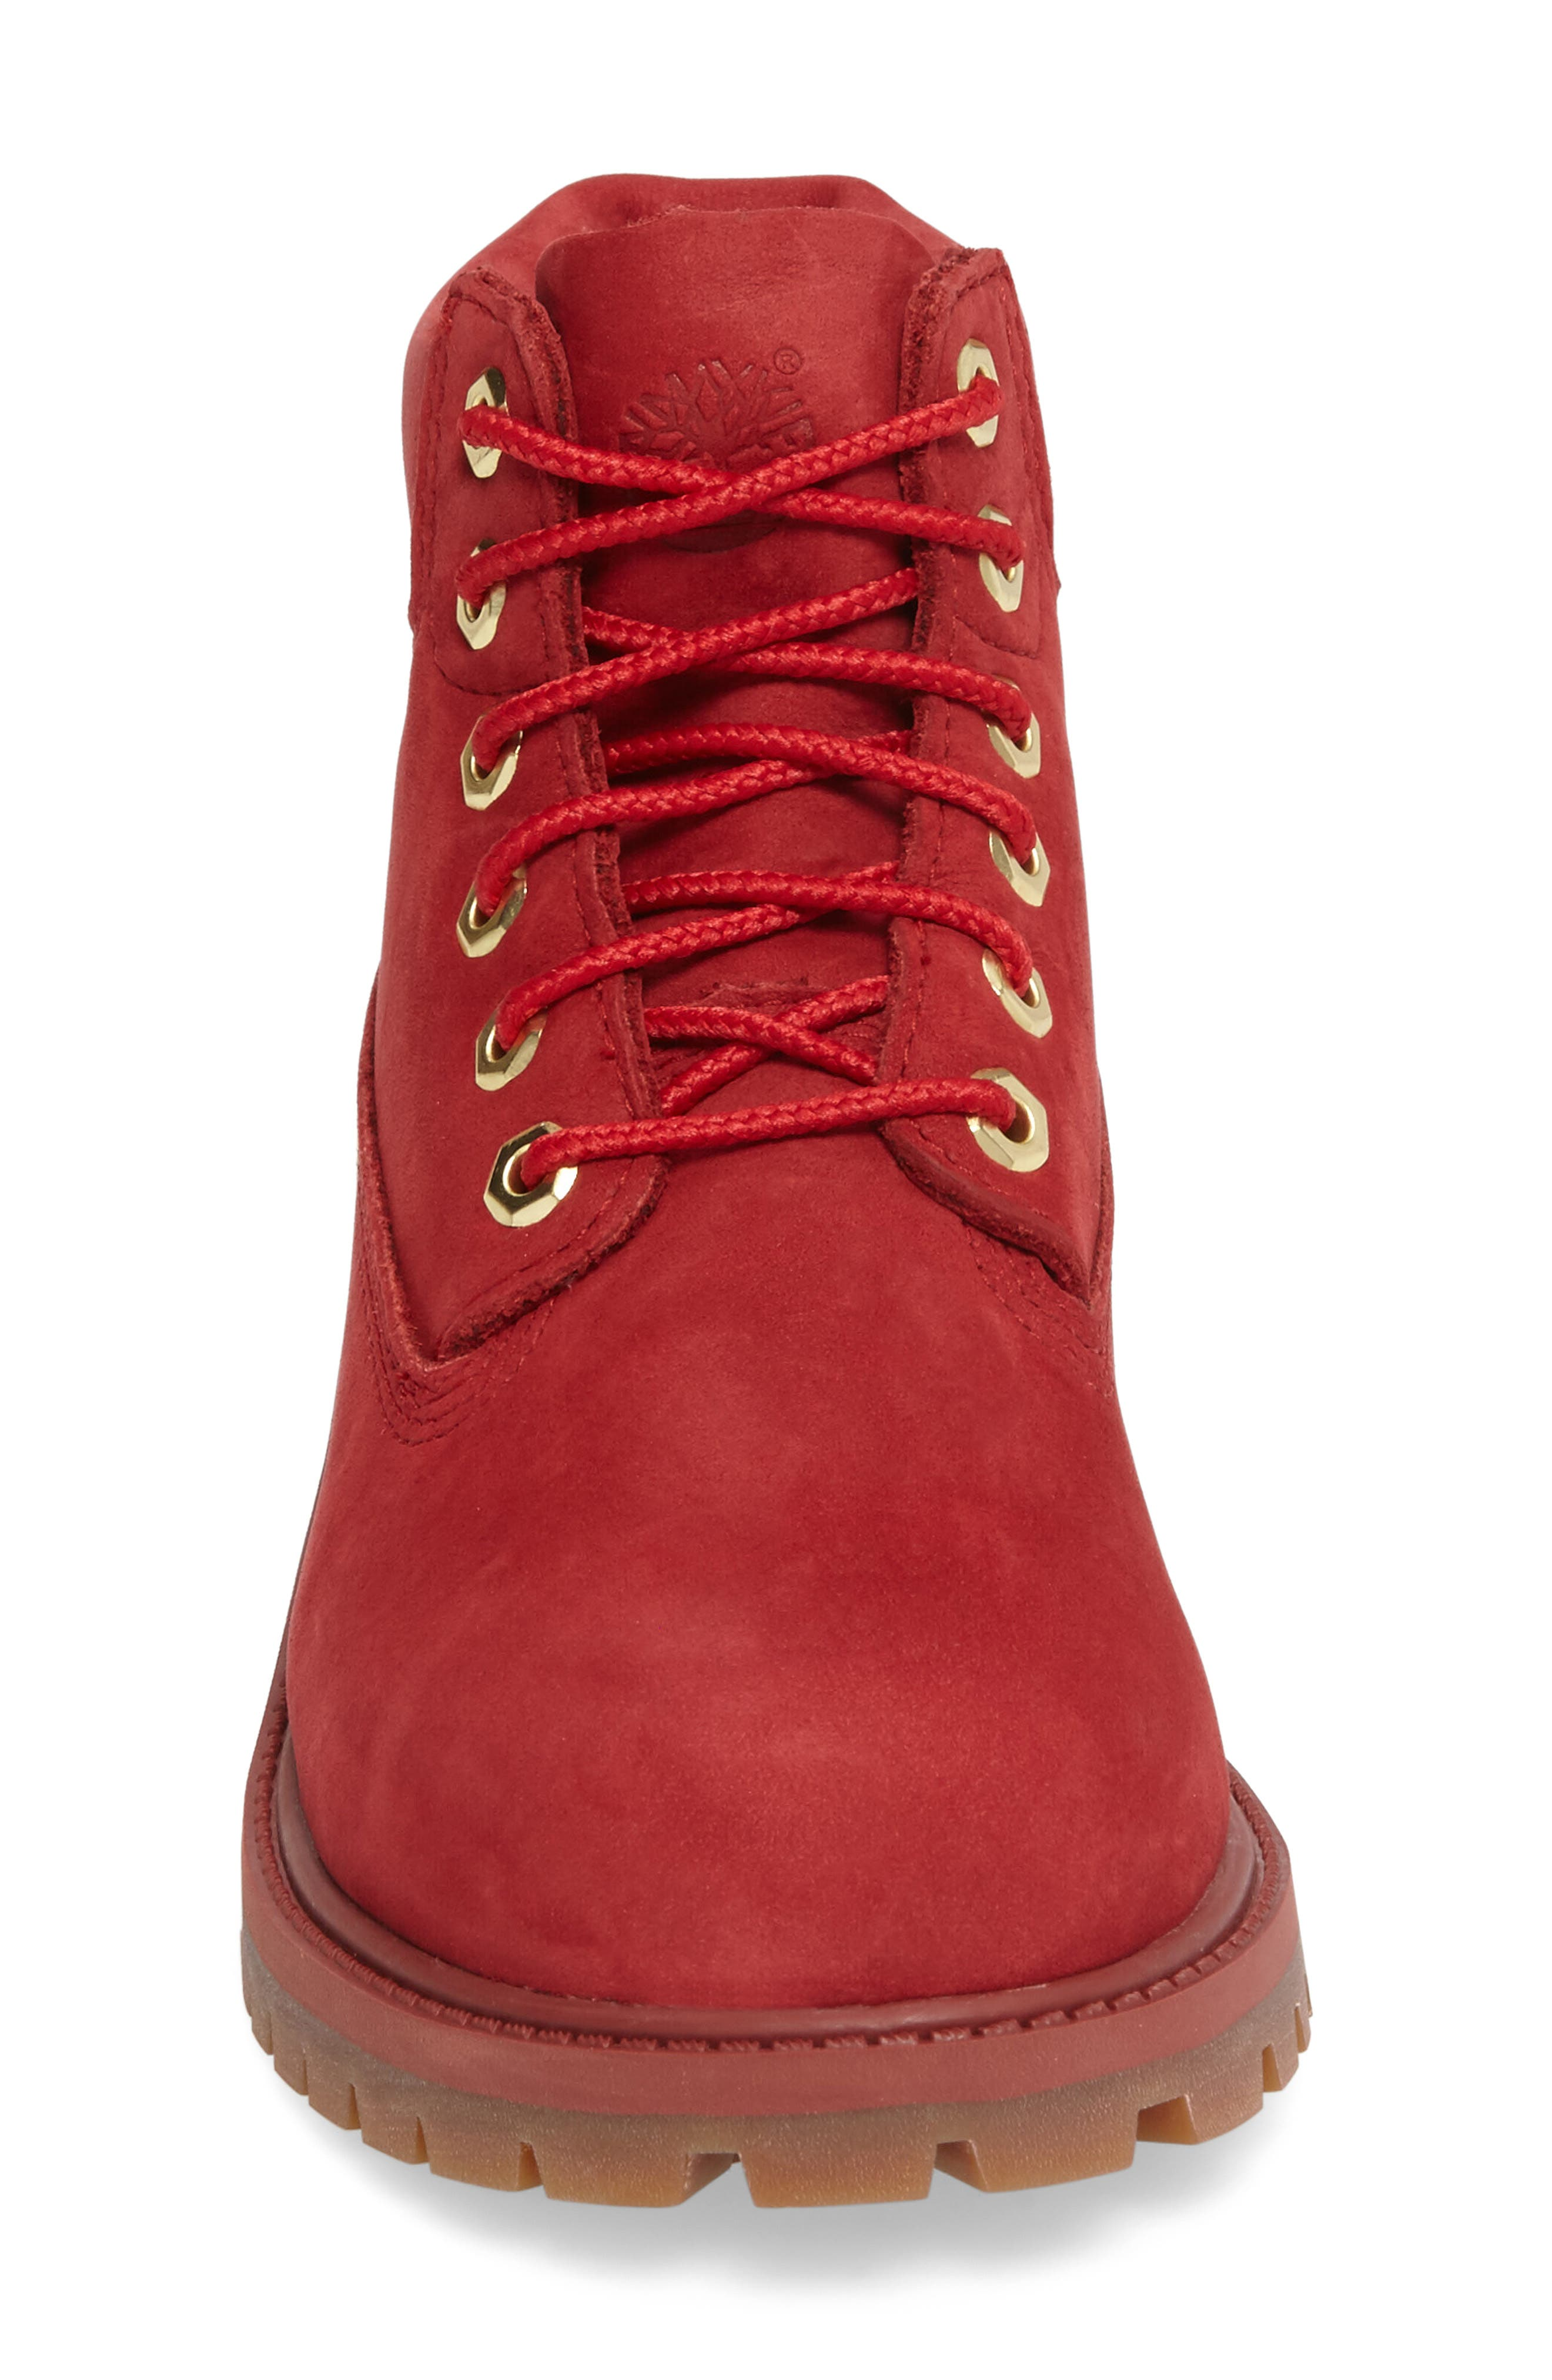 40th Anniversary Ruby Red Waterproof Boot,                             Alternate thumbnail 3, color,                             601